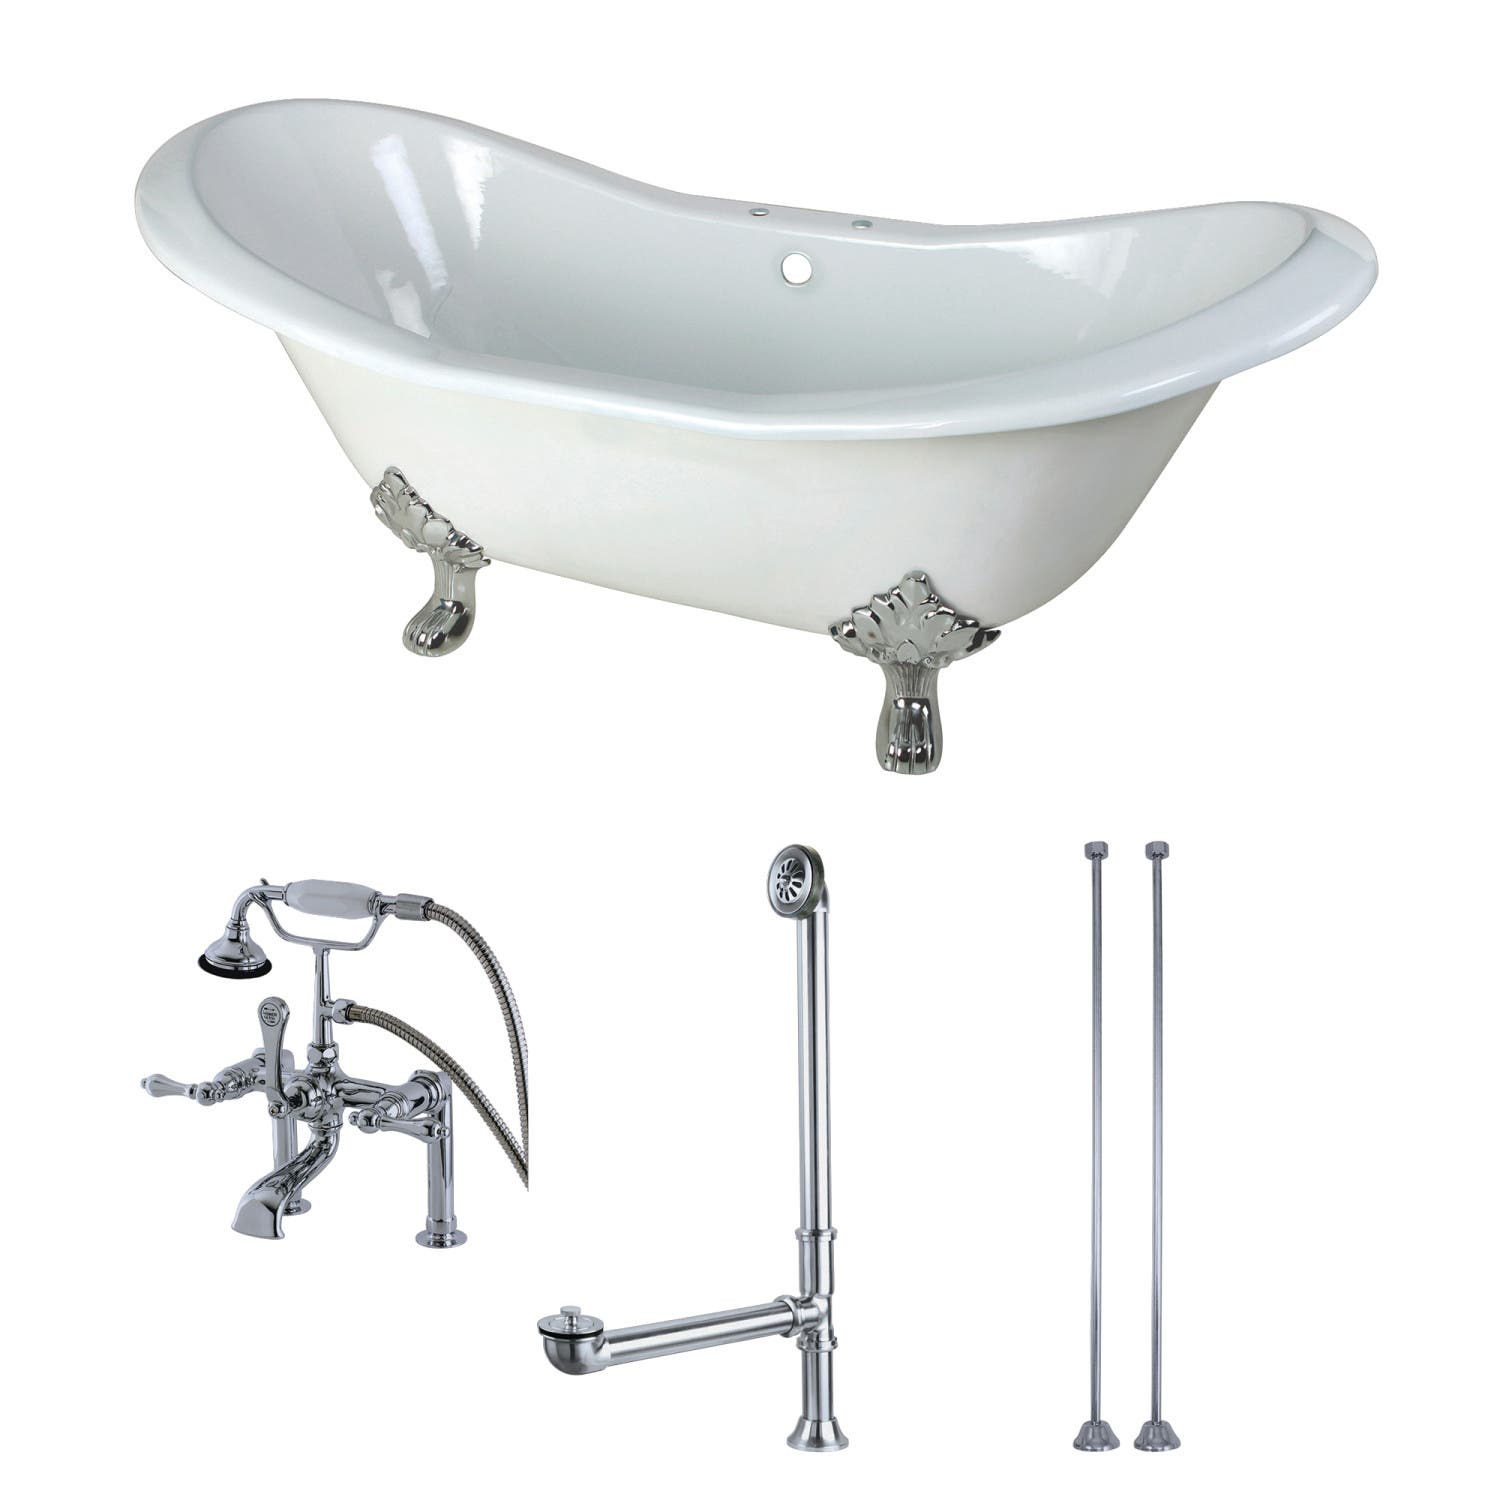 Kingston Brass Aqua Eden 72 Inch Cast Iron Clawfoot Tub With Faucet